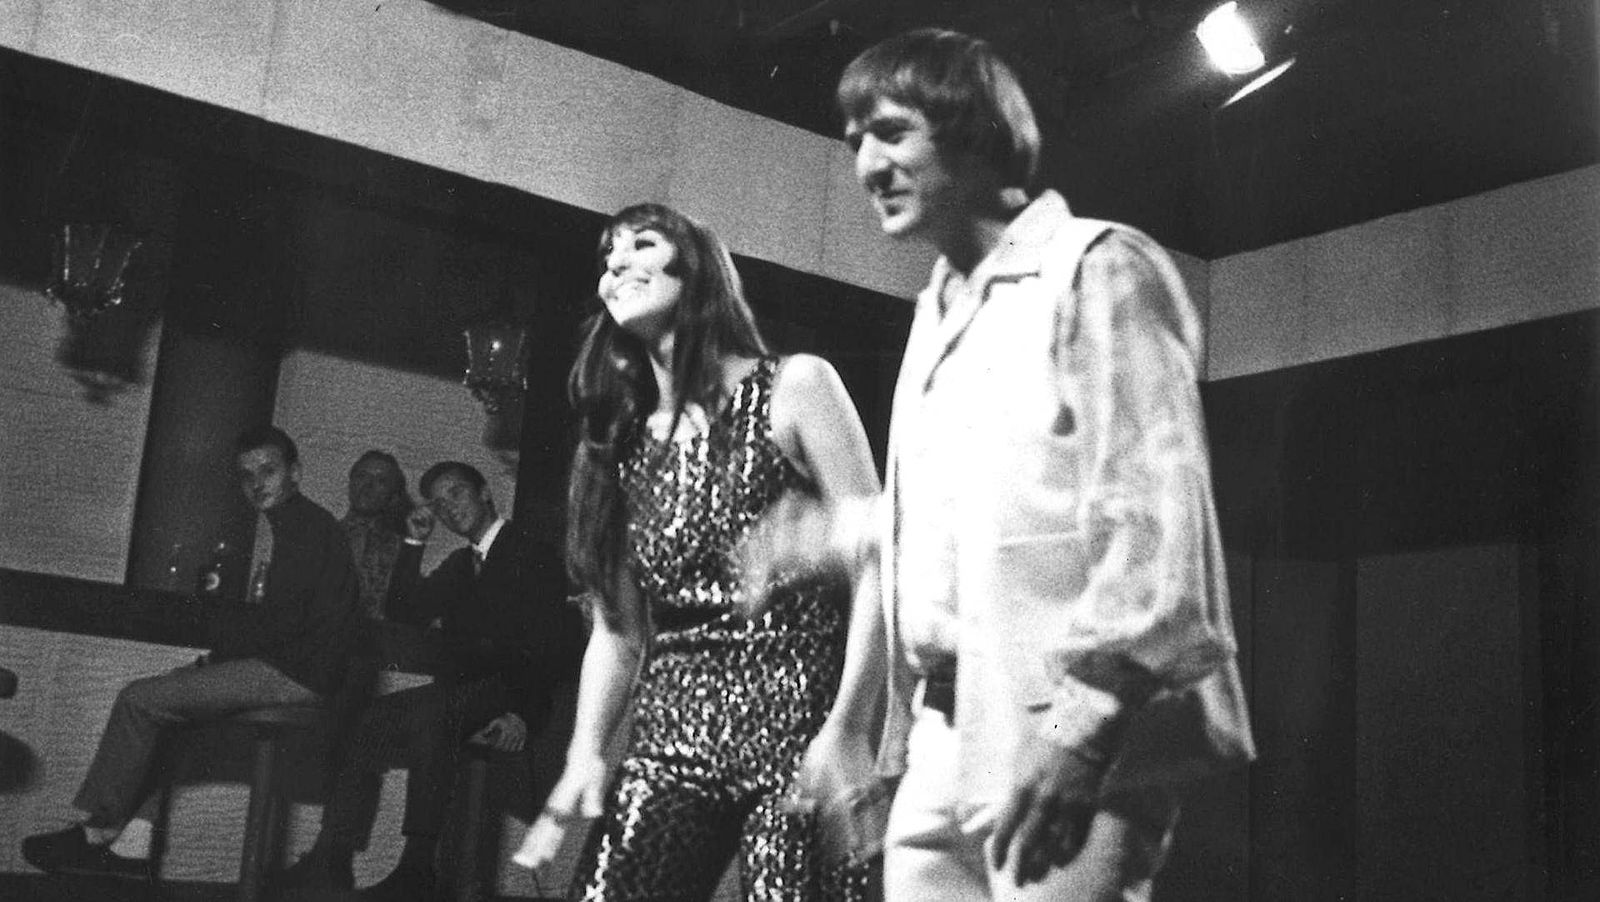 Image Source: Wikimedia Commons/Public Domain/Photograph of Sonny and Cher during their visit to Helsinki.